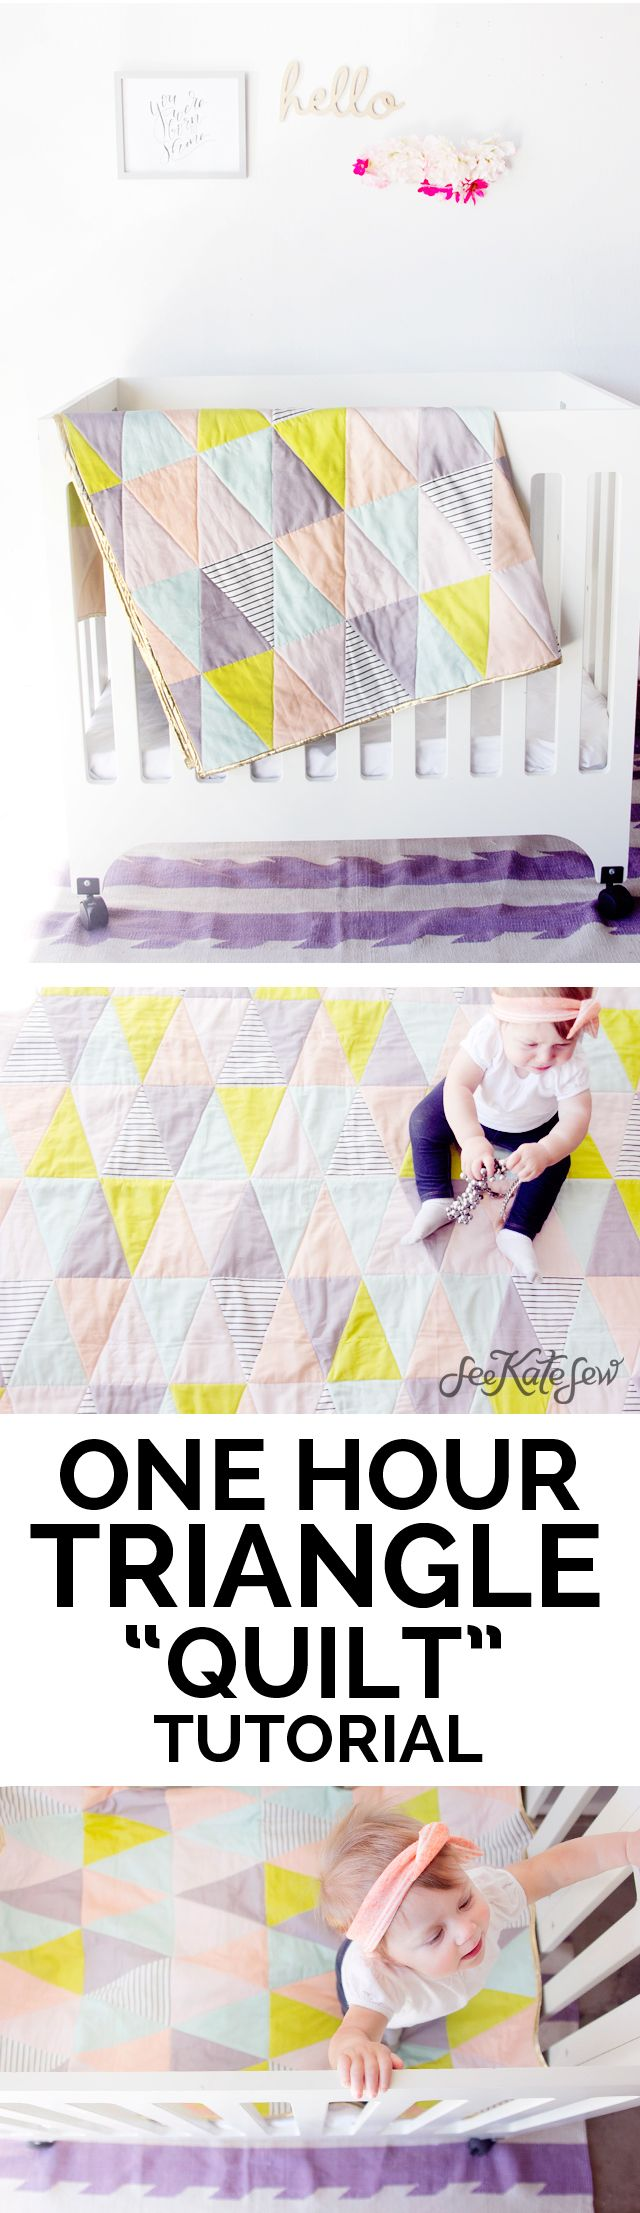 DIY ONE HOUR triangle quilt. For more DIY inspiration go to www.themakerscollective.com.au